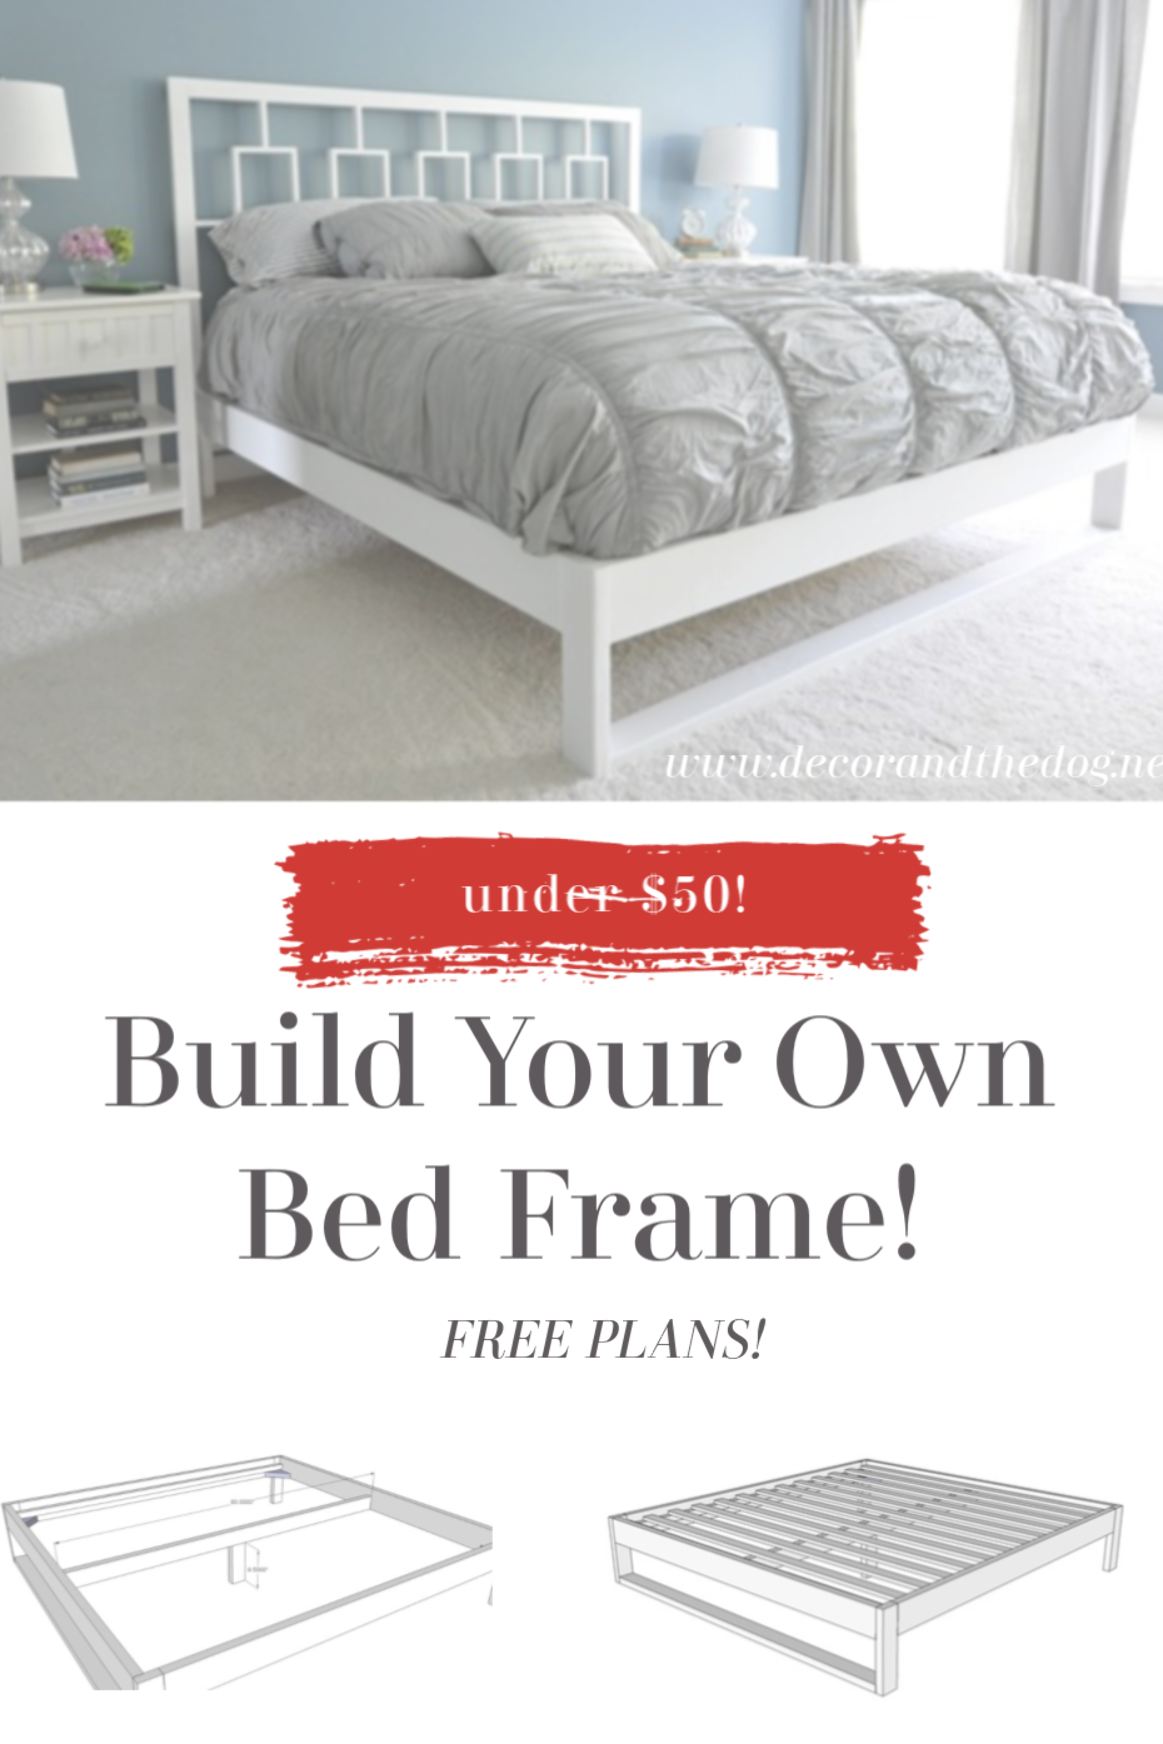 Learn How To Build Your Own Bed Frame For Under 50 With These